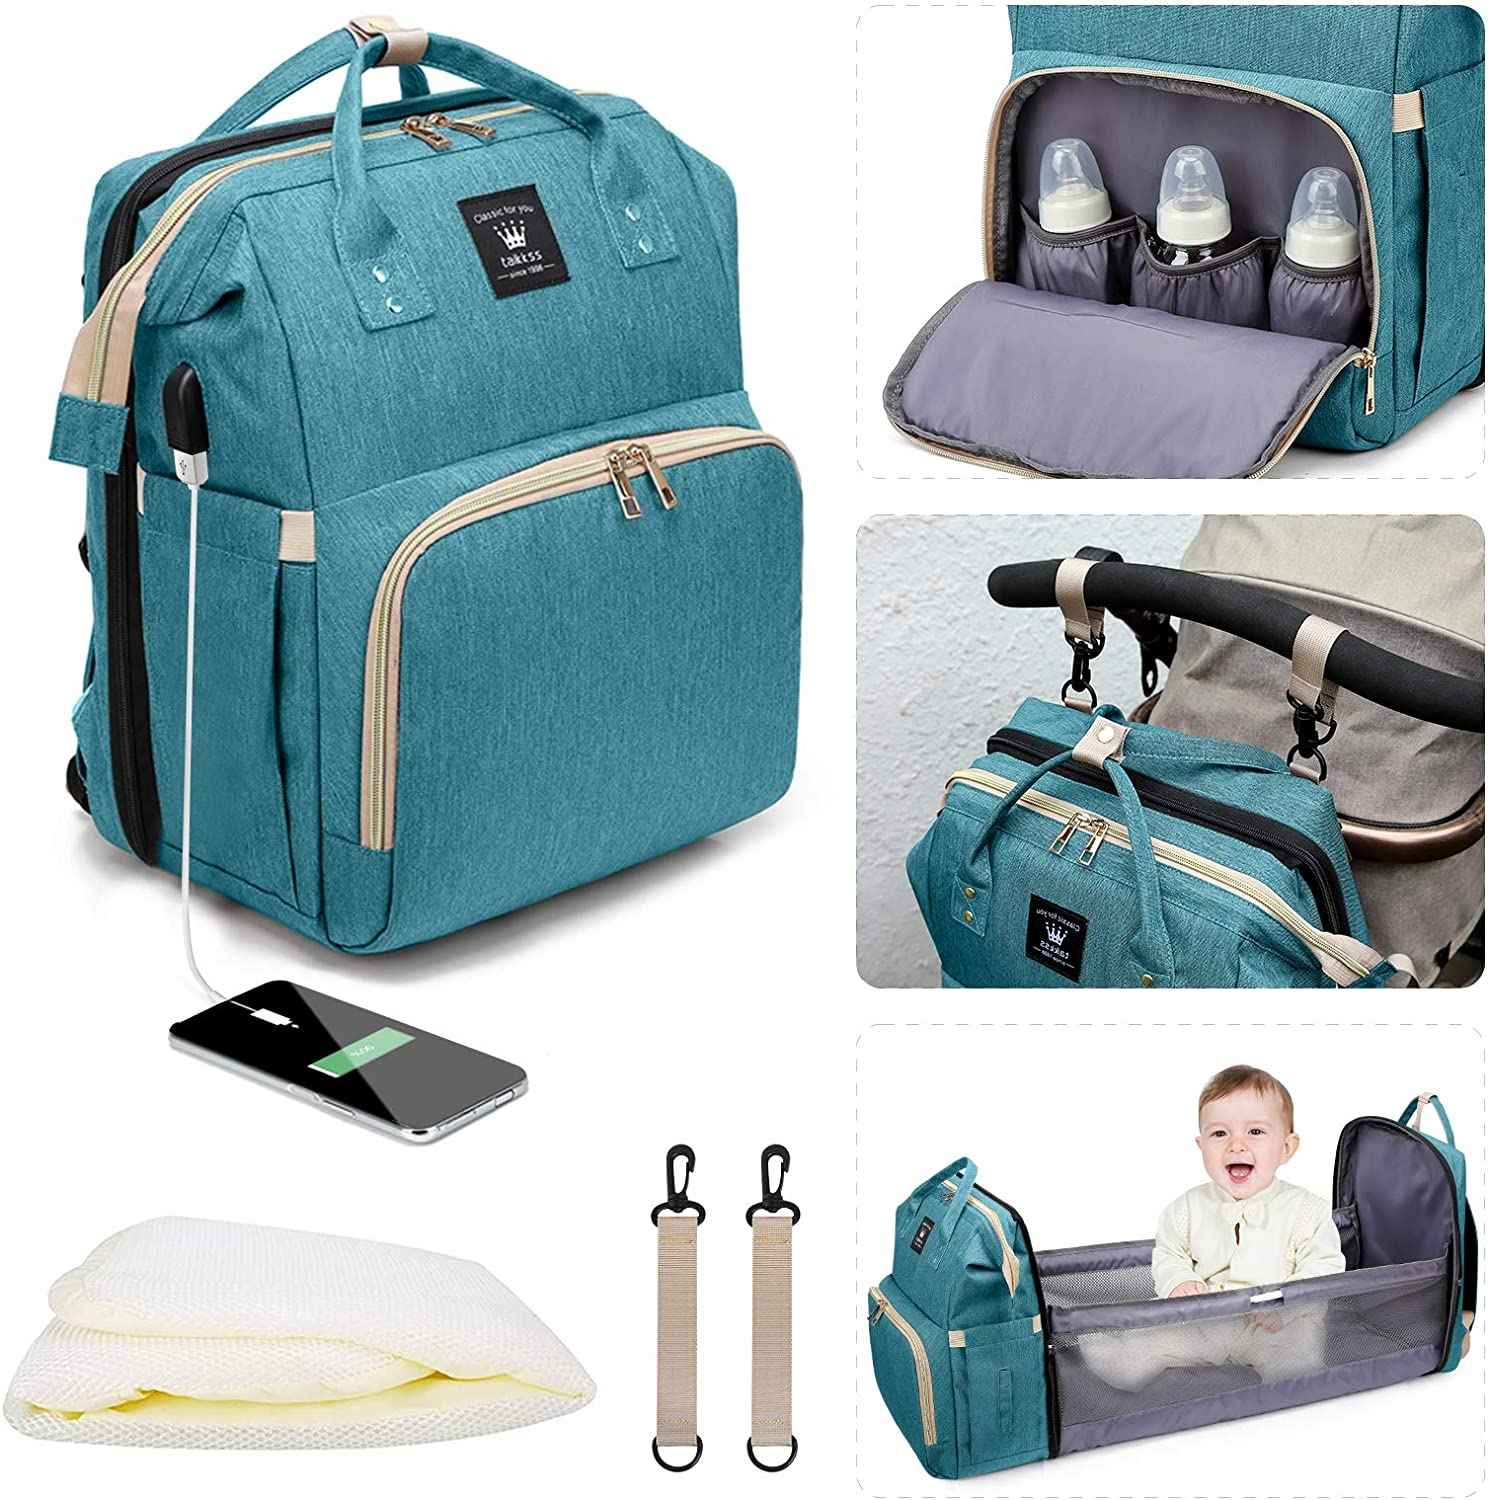 Leogreen 3 in 1 Diaper Backpack with Changing Station, Portable Baby Bag with USB Charging Port, Bassinet, Large Capacity Travel Nappy Bag with Stroller Straps Thermal Pockets, Dark Green